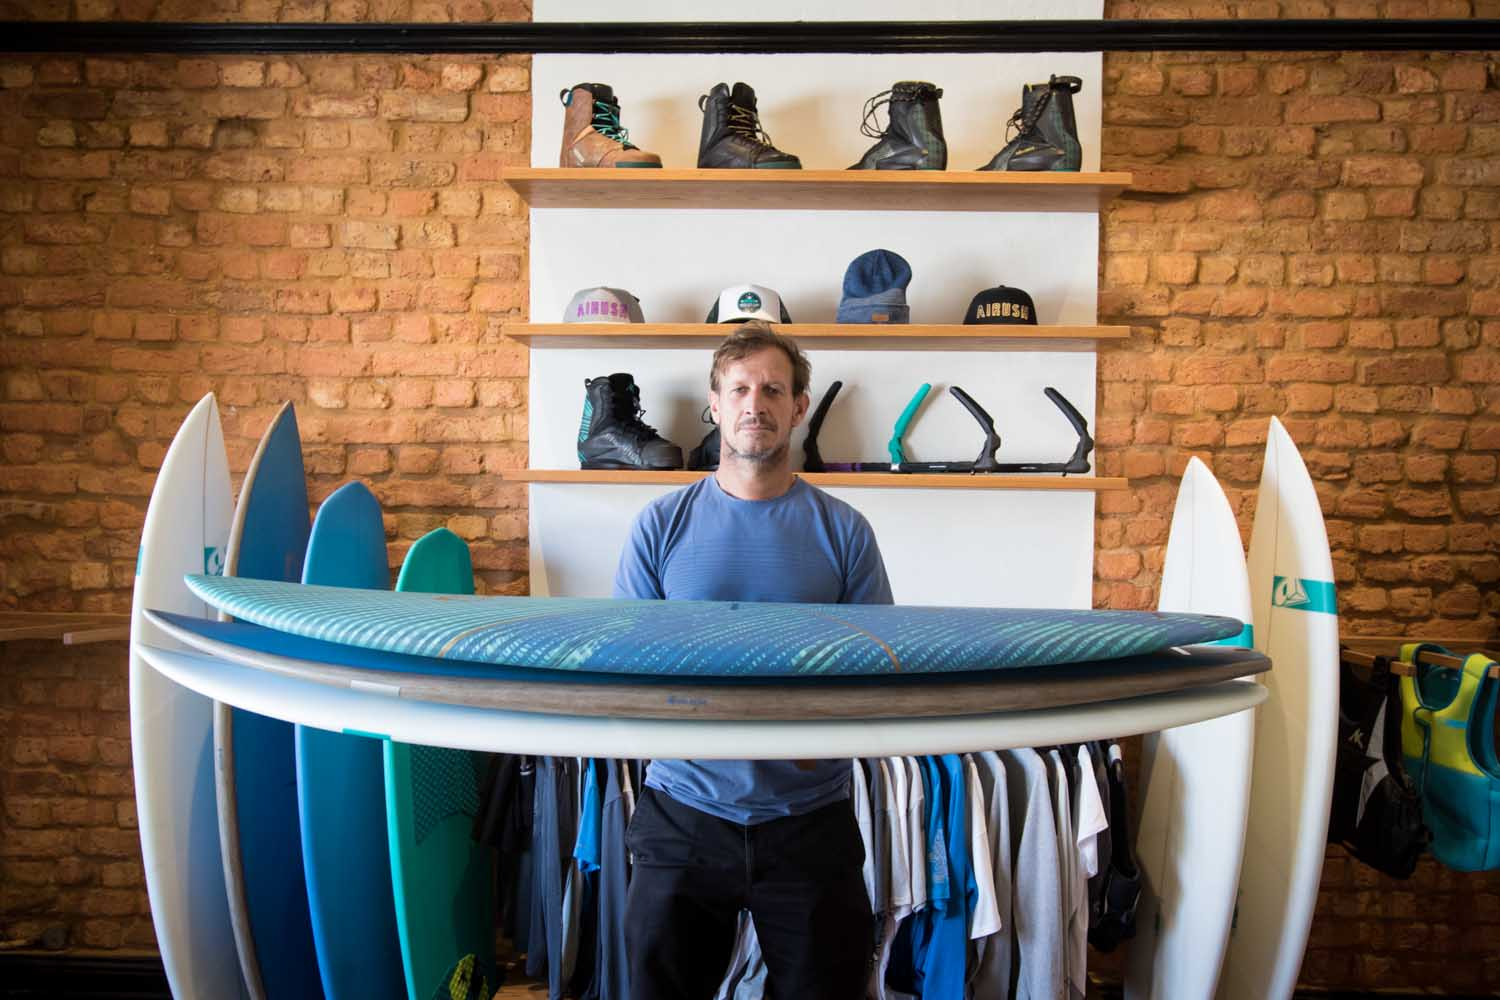 BEHIND THE DESIGN – THE AIRUSH SURF SERIES 17